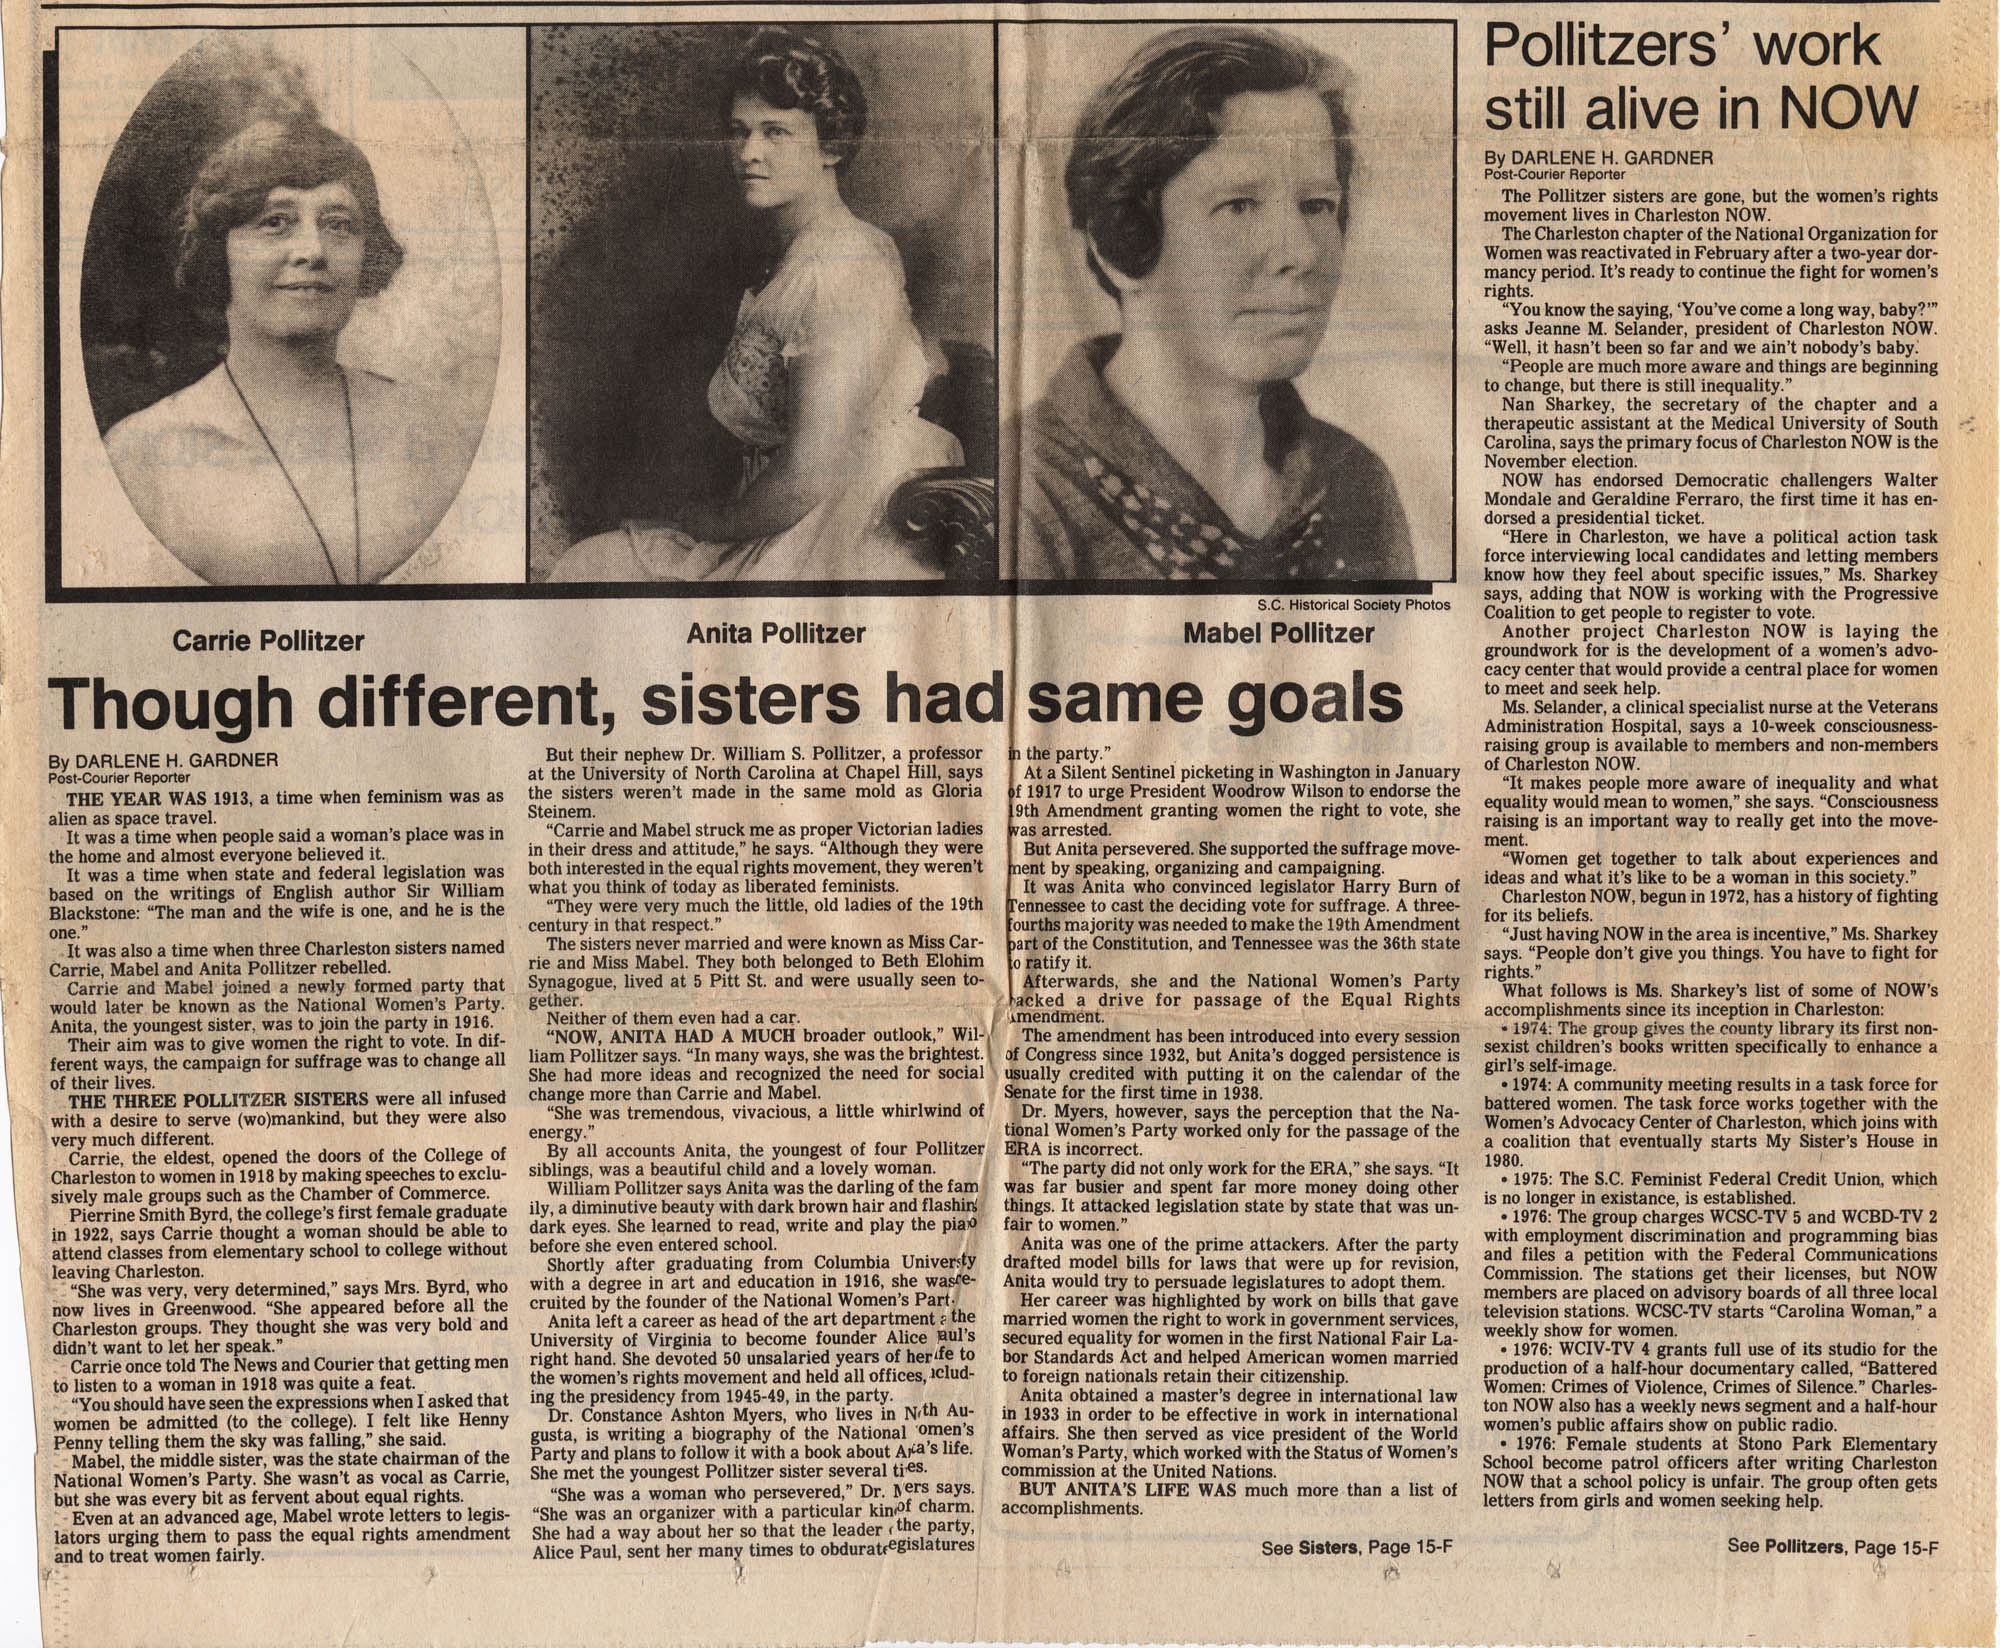 Newspaper article on Pollitzer sisters